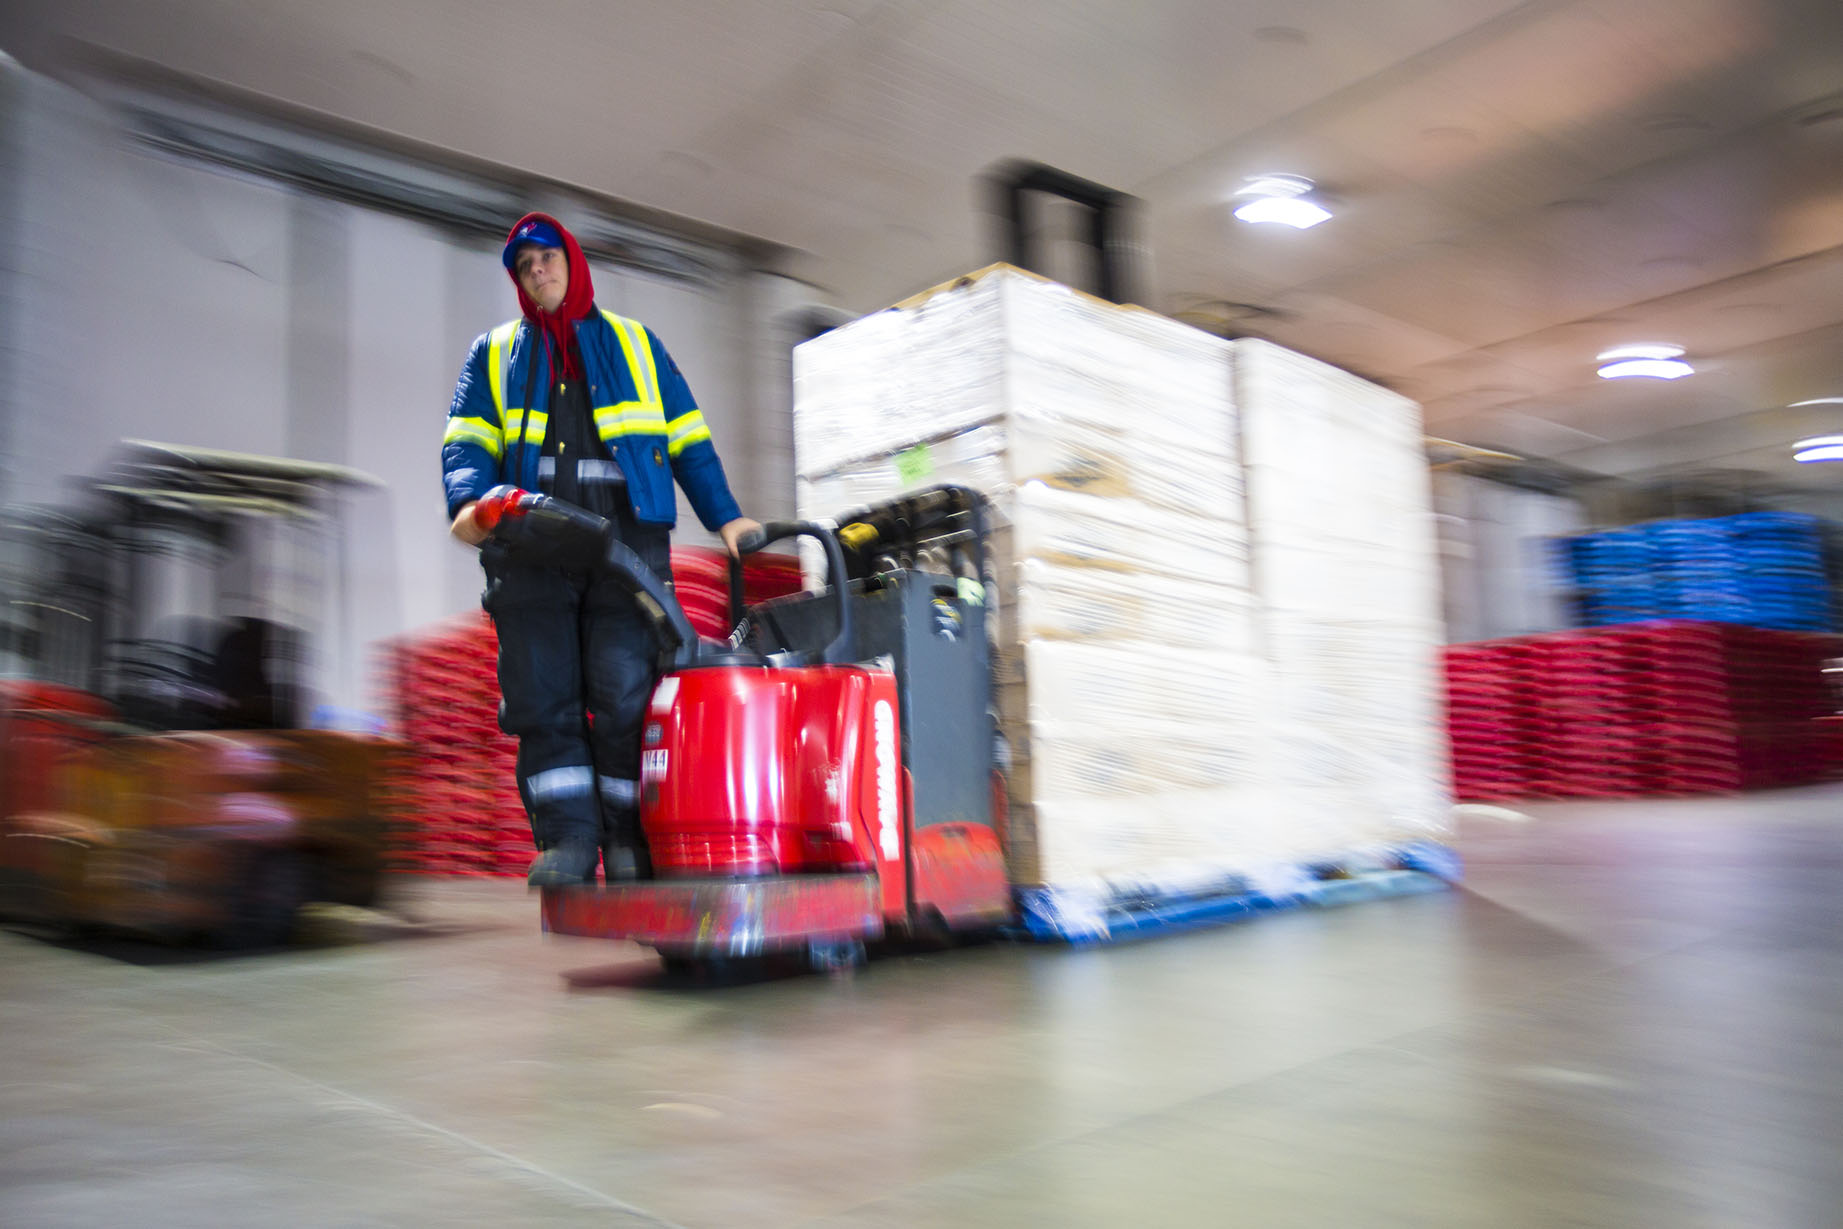 Material Handling Equipment (MHE) Safety: Are you following these best practices?